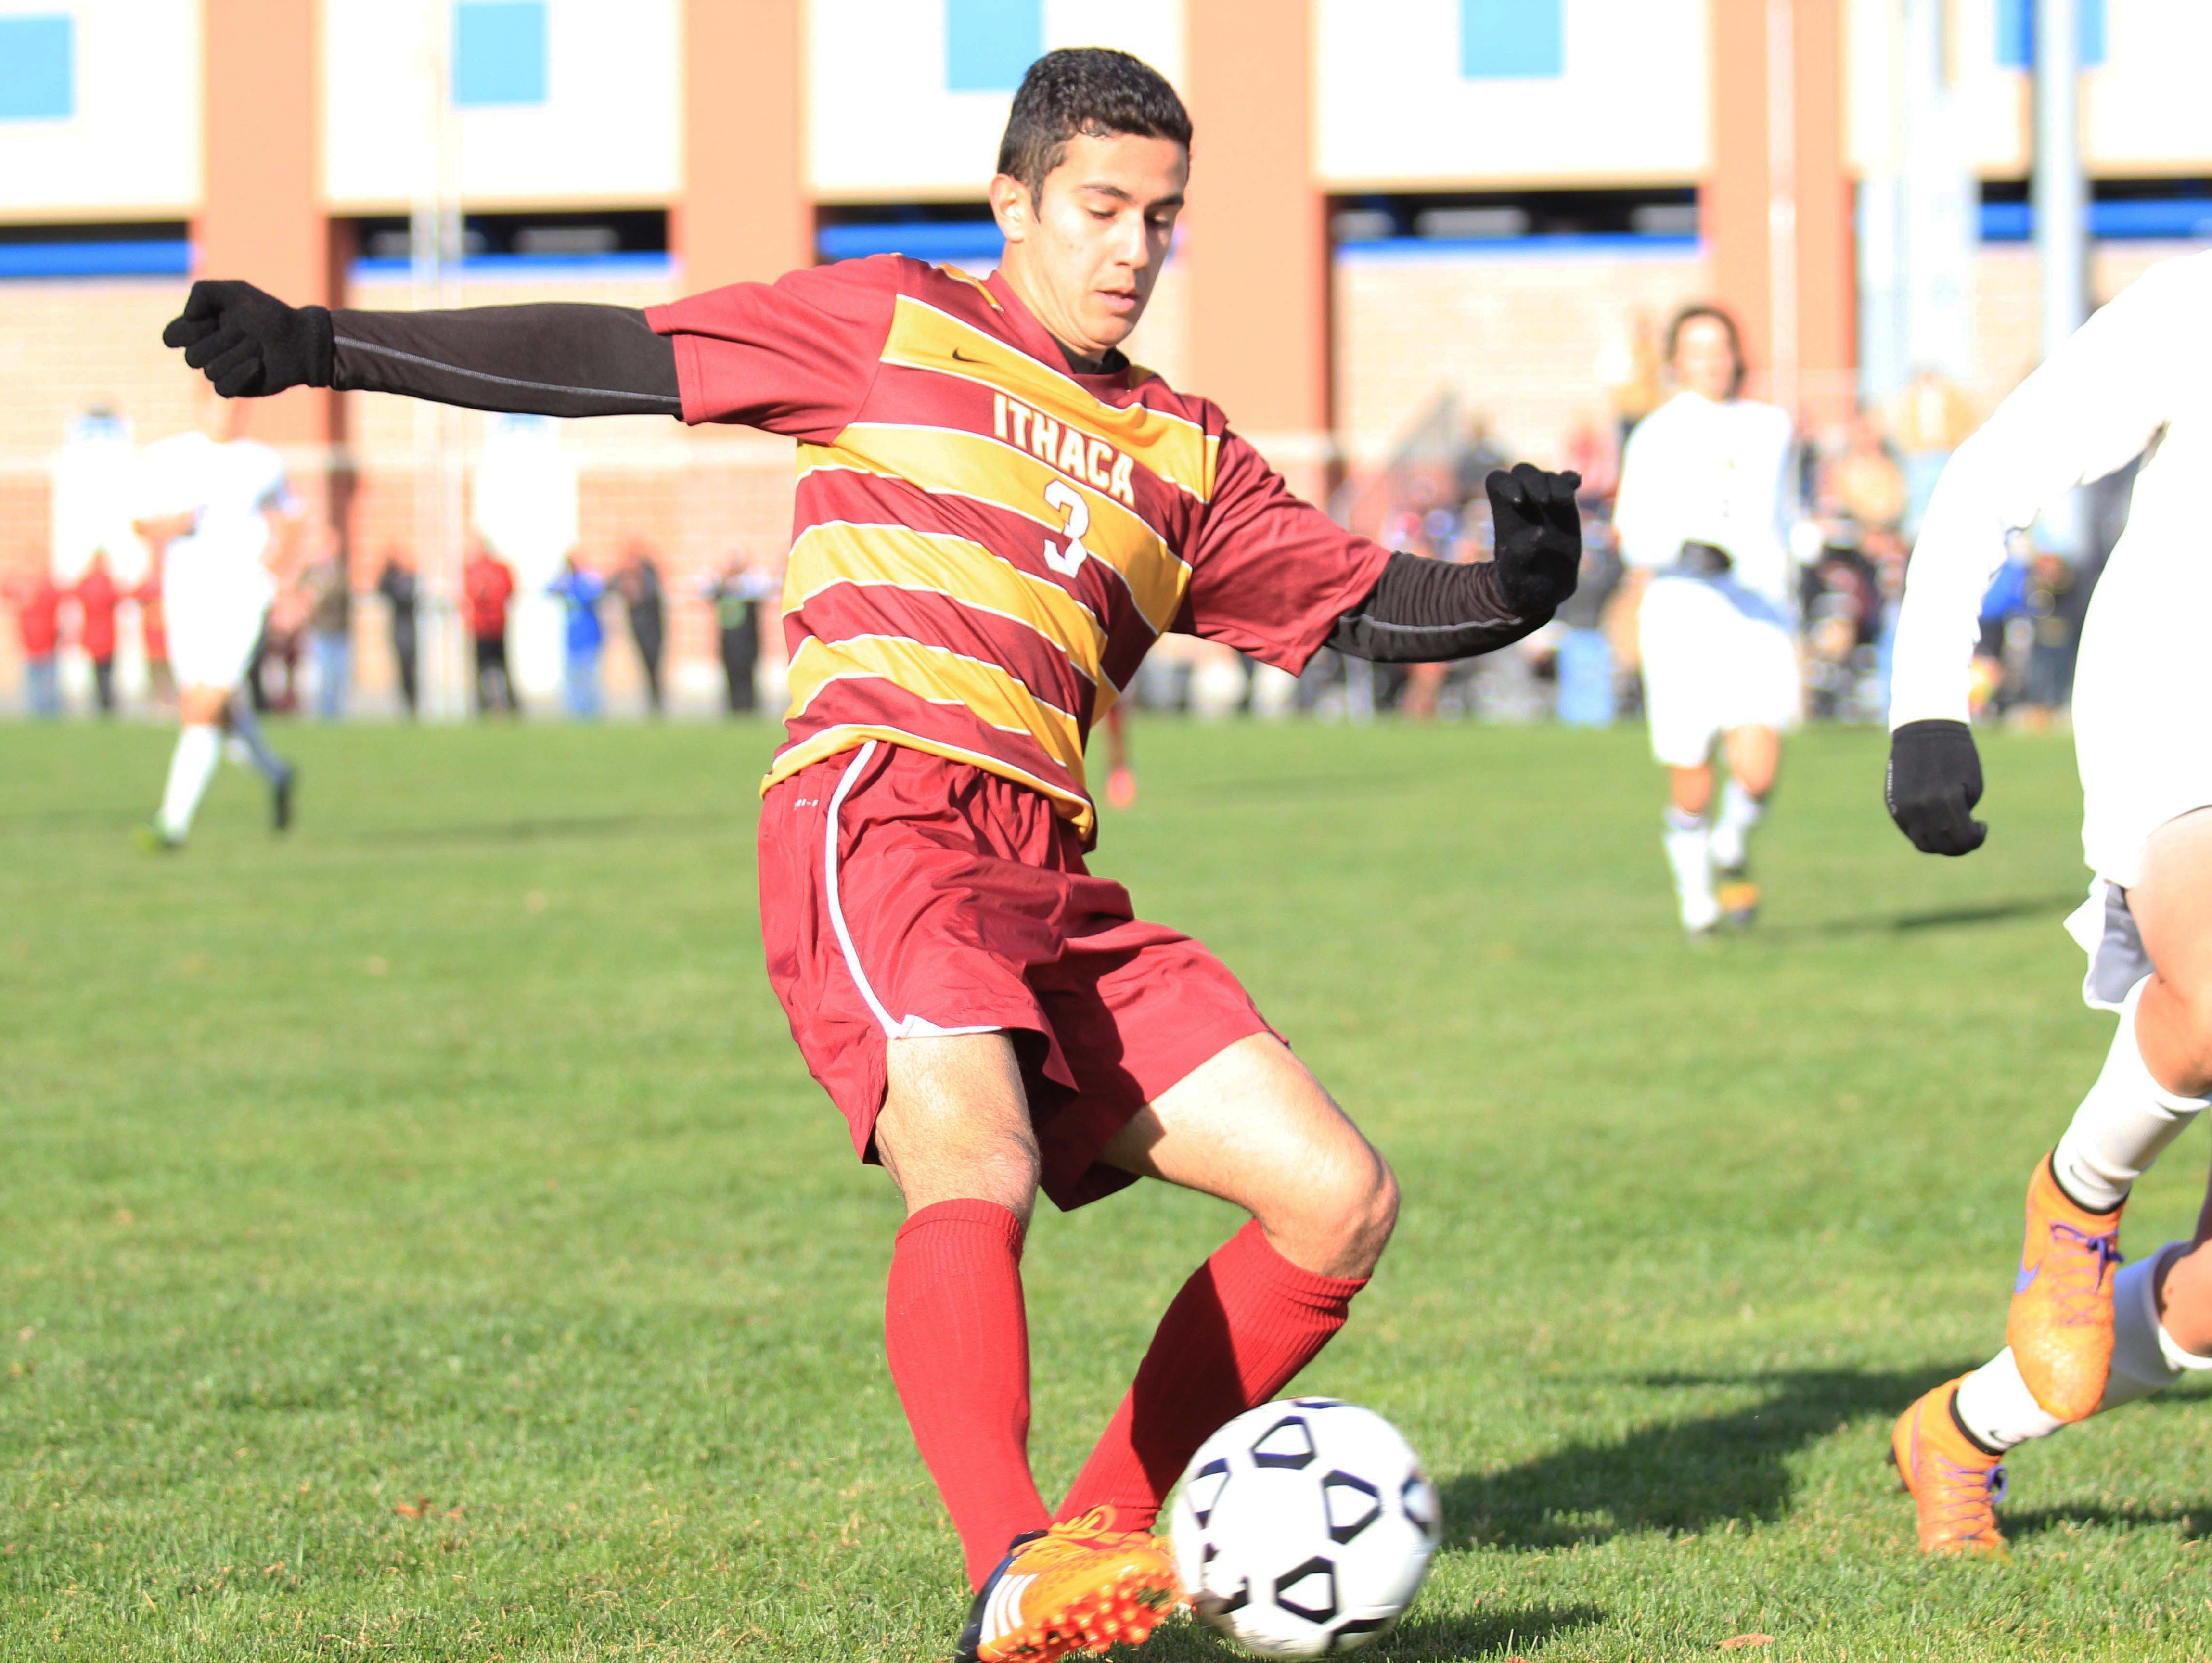 Ithaca's Sohrab Memarzadeh dribbles with the ball during the NYSPHSAA semi final in Middletown, NY